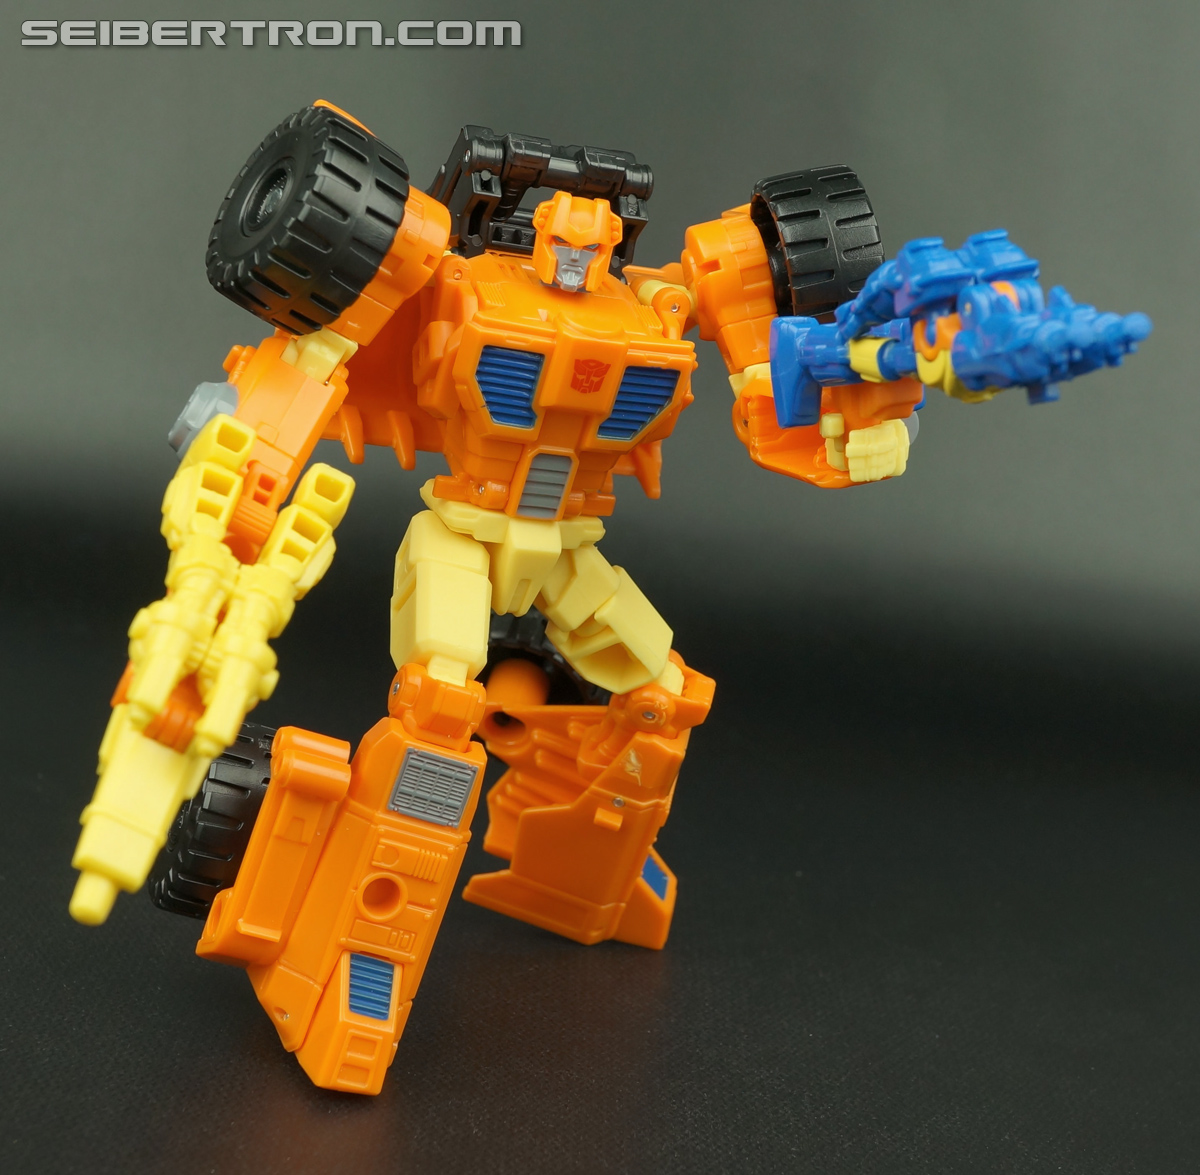 Transformers Generations Caliburst (Tracer) (Image #59 of 63)